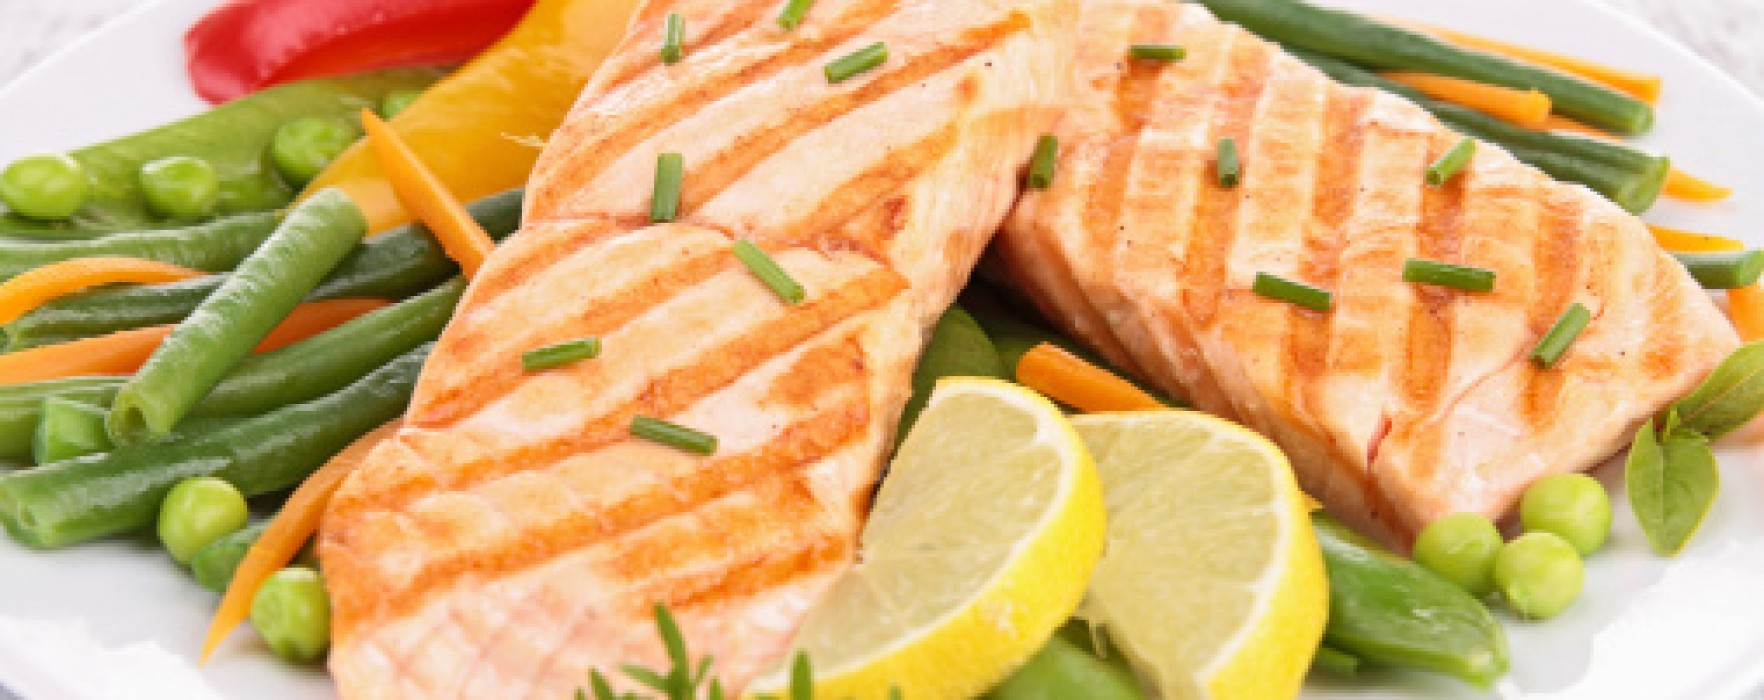 Veggie Diets, Especially With Fish, Cut Colorectal Cancer Risk